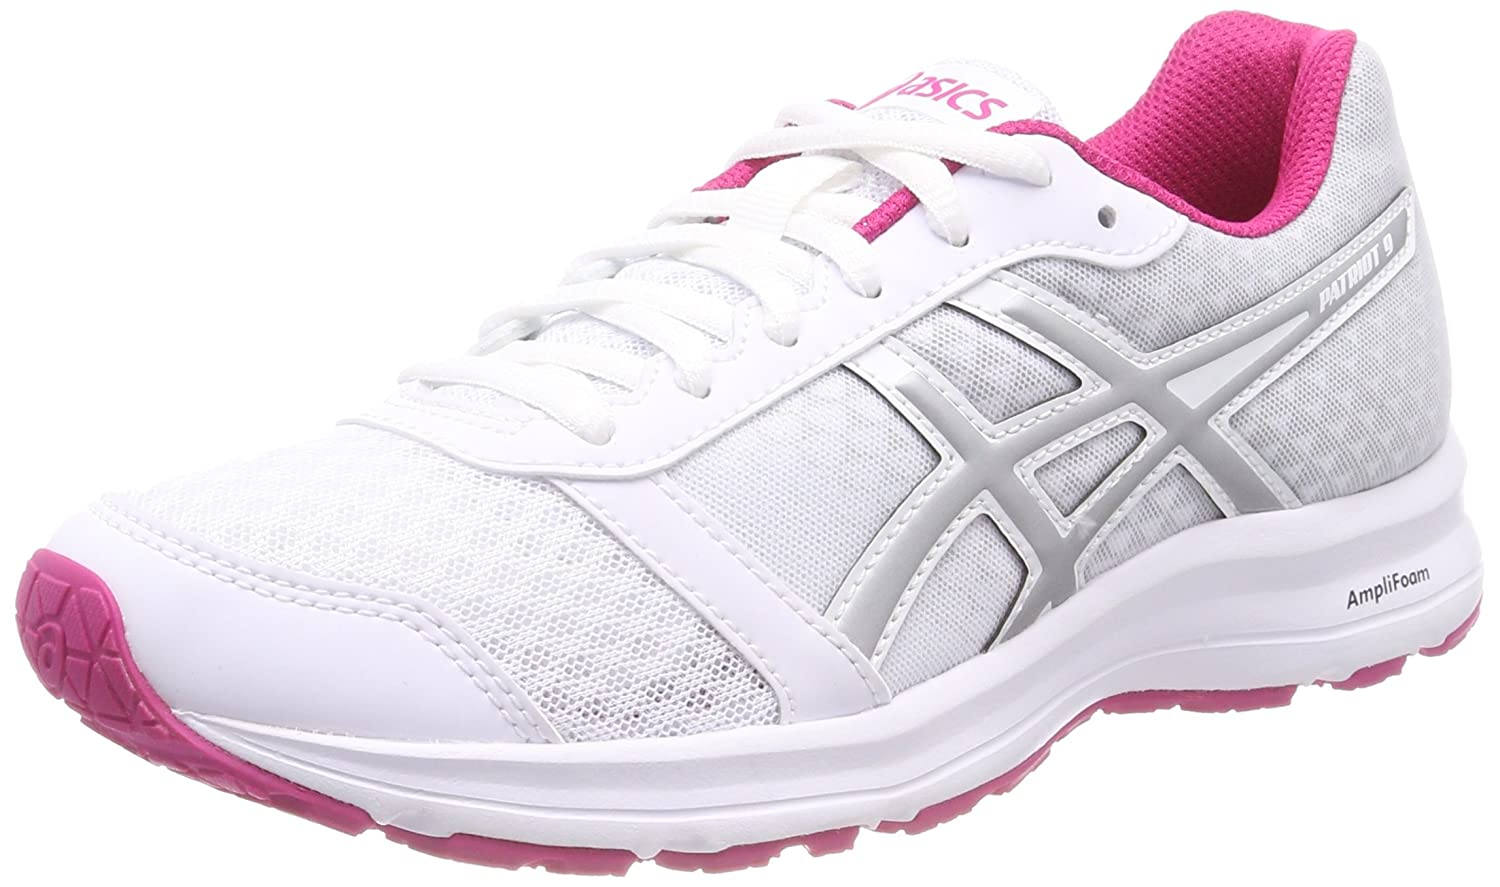 Asics Patriot 9, Zapatillas de Running para Mujer 40.5 EU|Multicolor (White / Silver / Fuchsia Purple 0193)